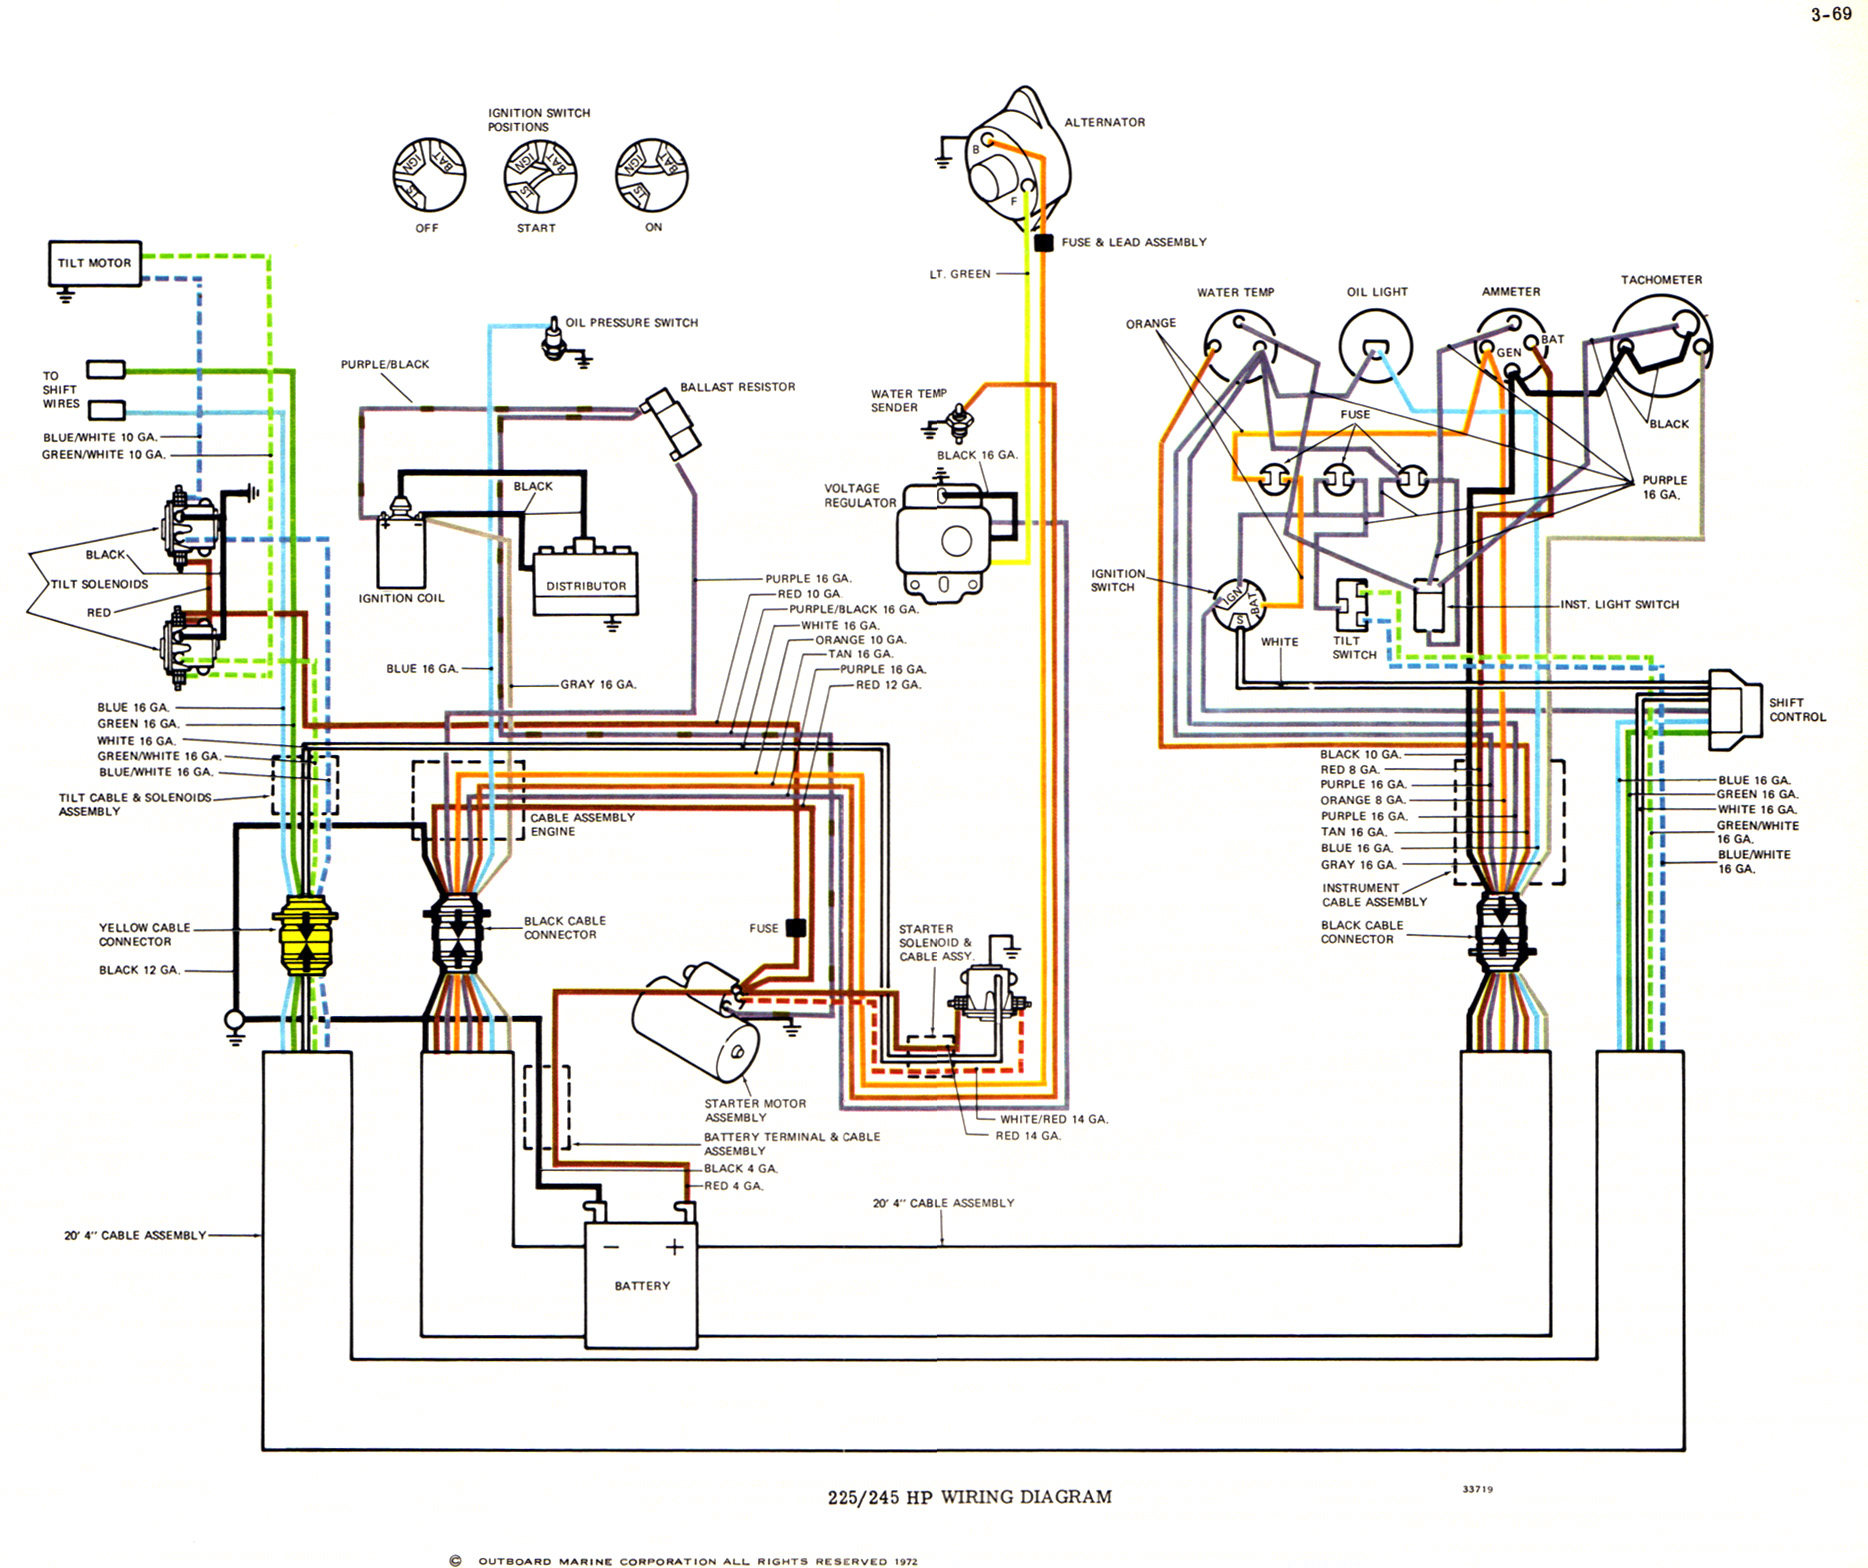 1989 Javelin Trim Gauge Wiring Electrical Diagram Images Gallery